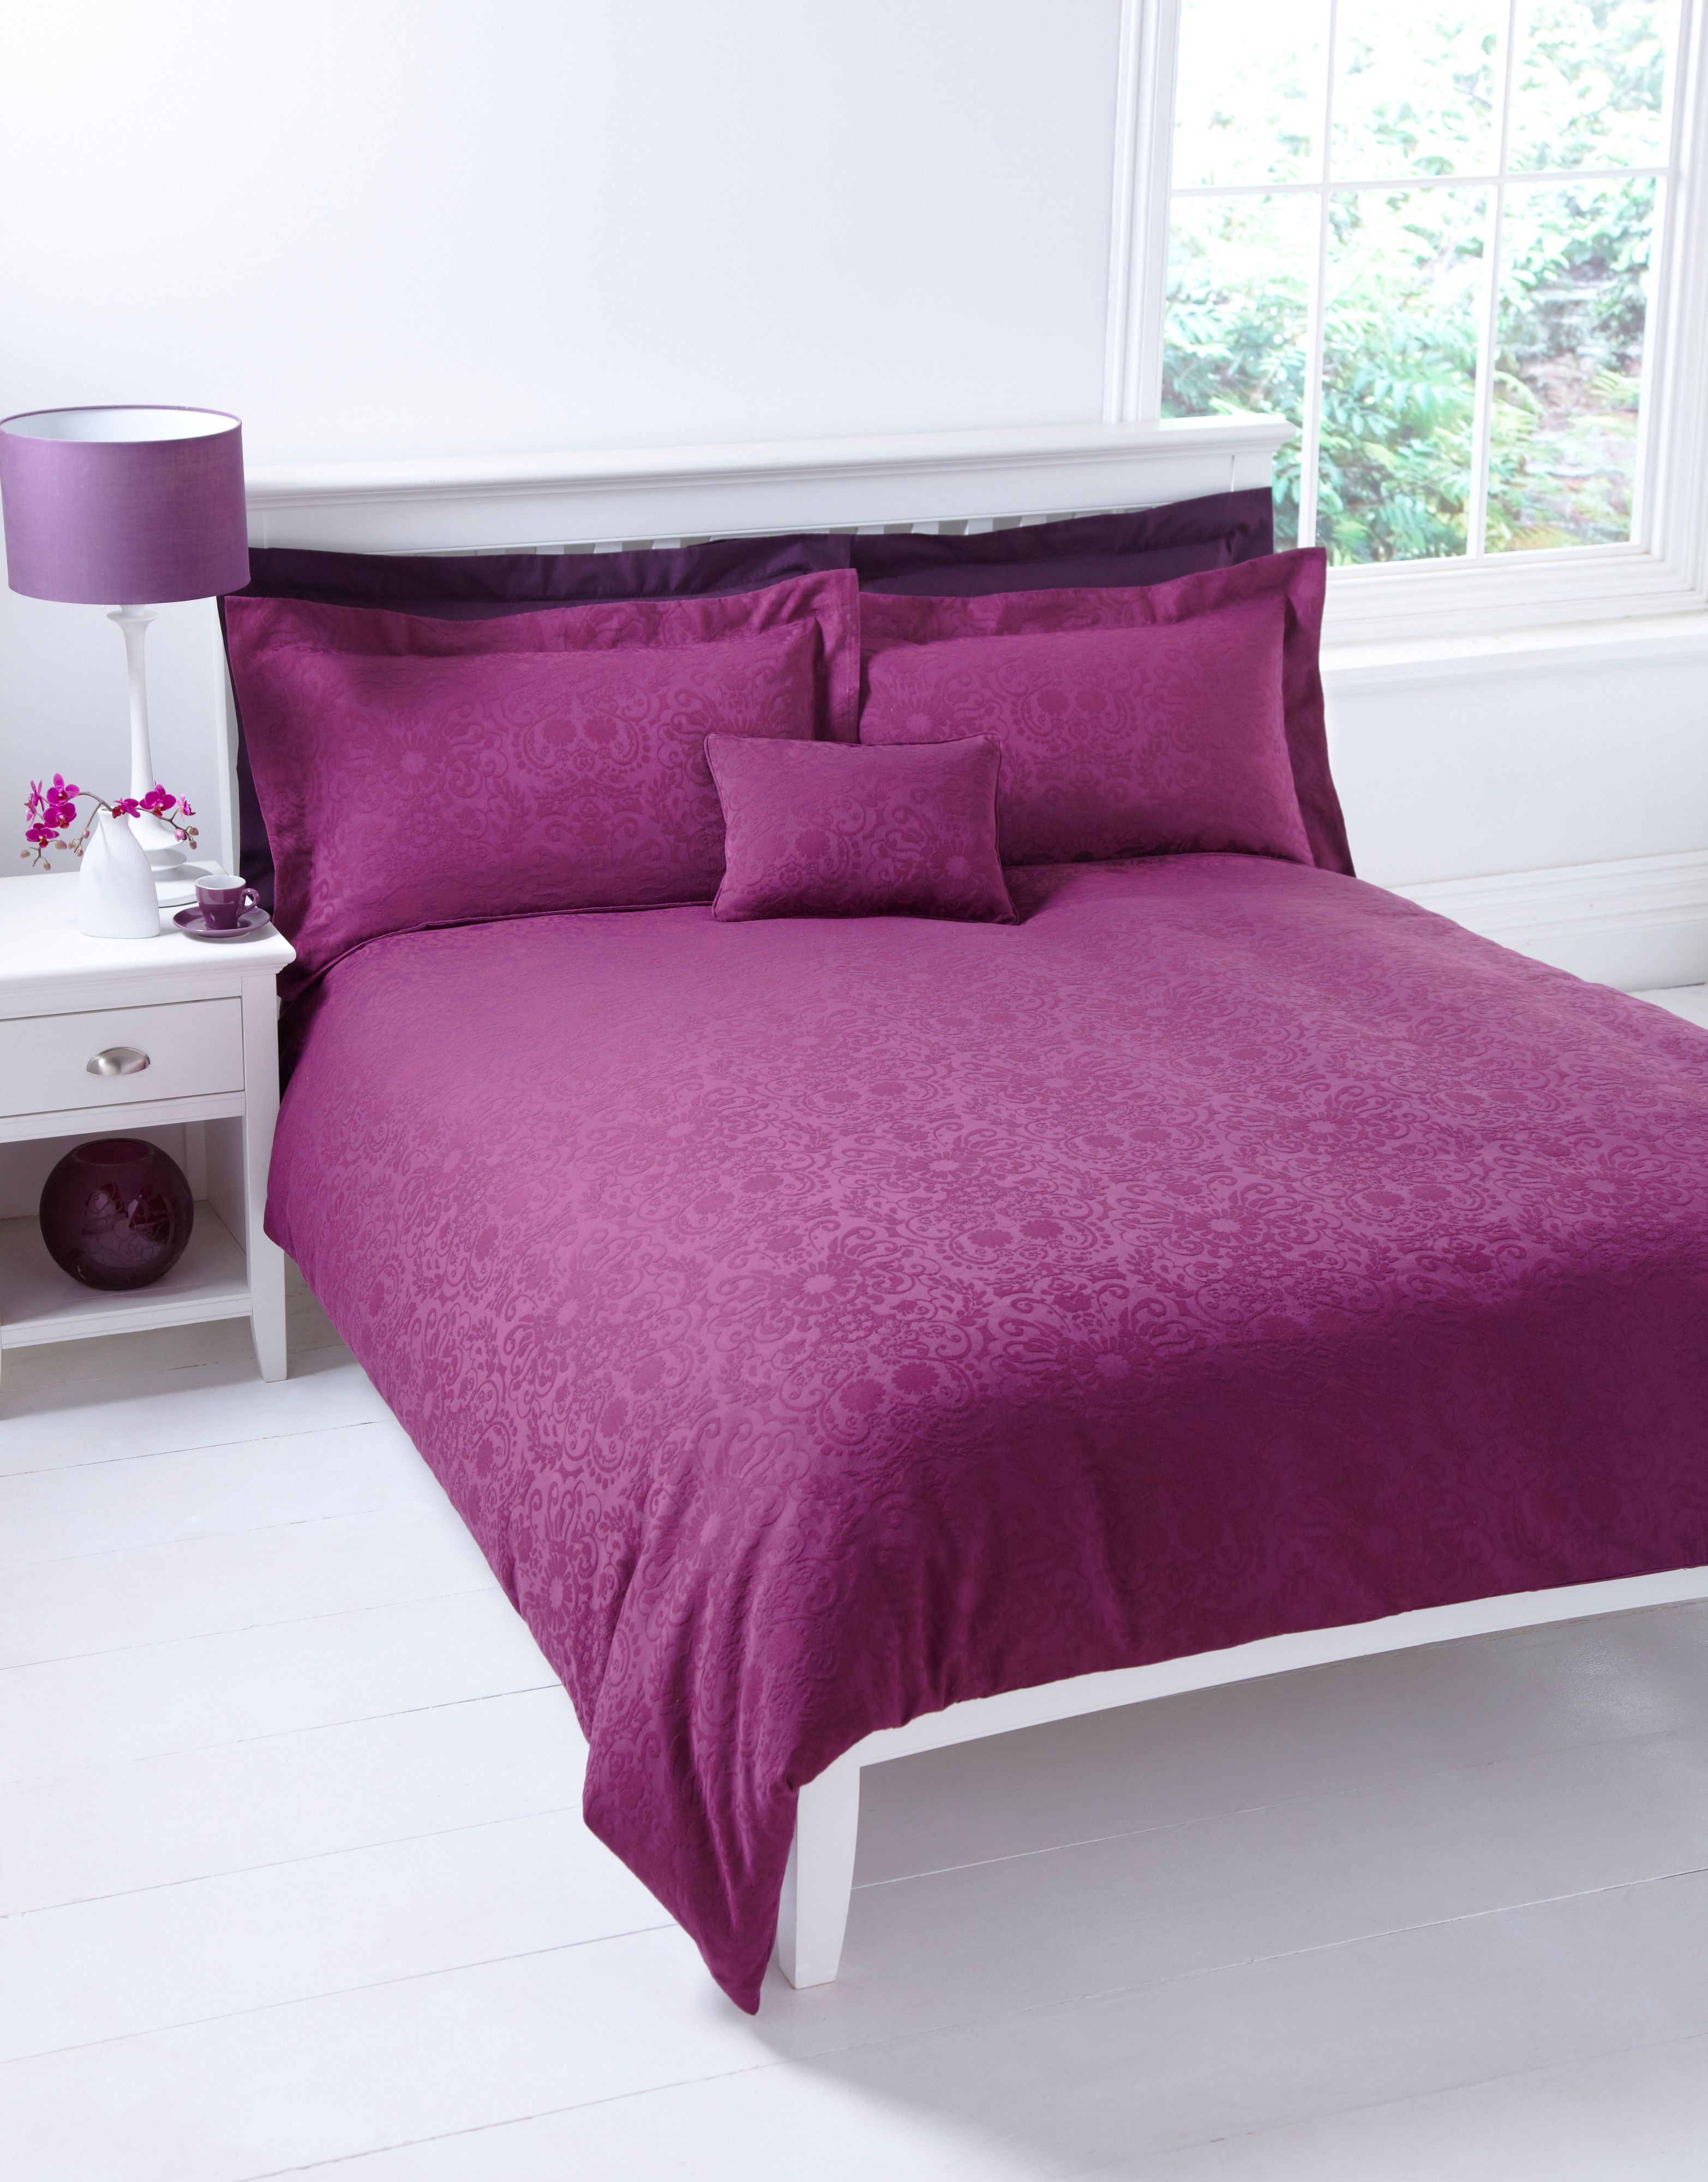 Princess Plum super king duvet cover